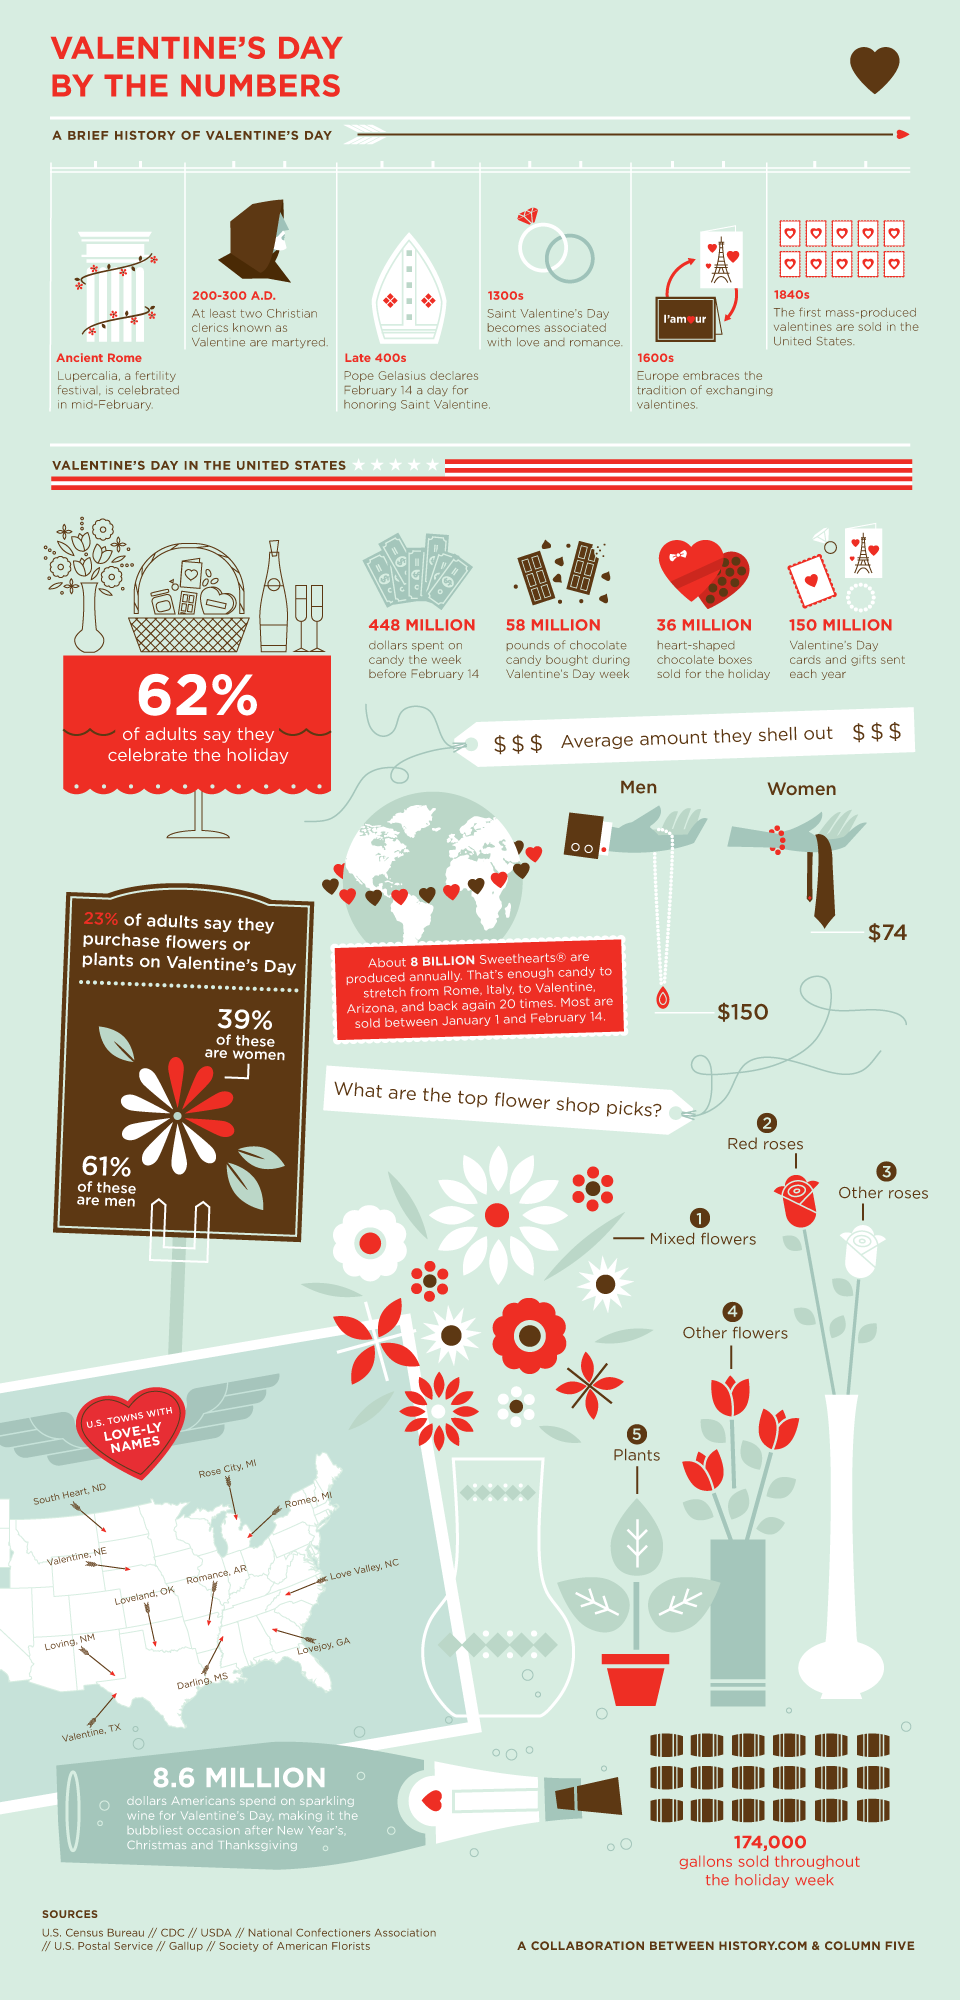 http://cdn.history.com/sites/2/2014/01/History-Valentines-final-v3.png